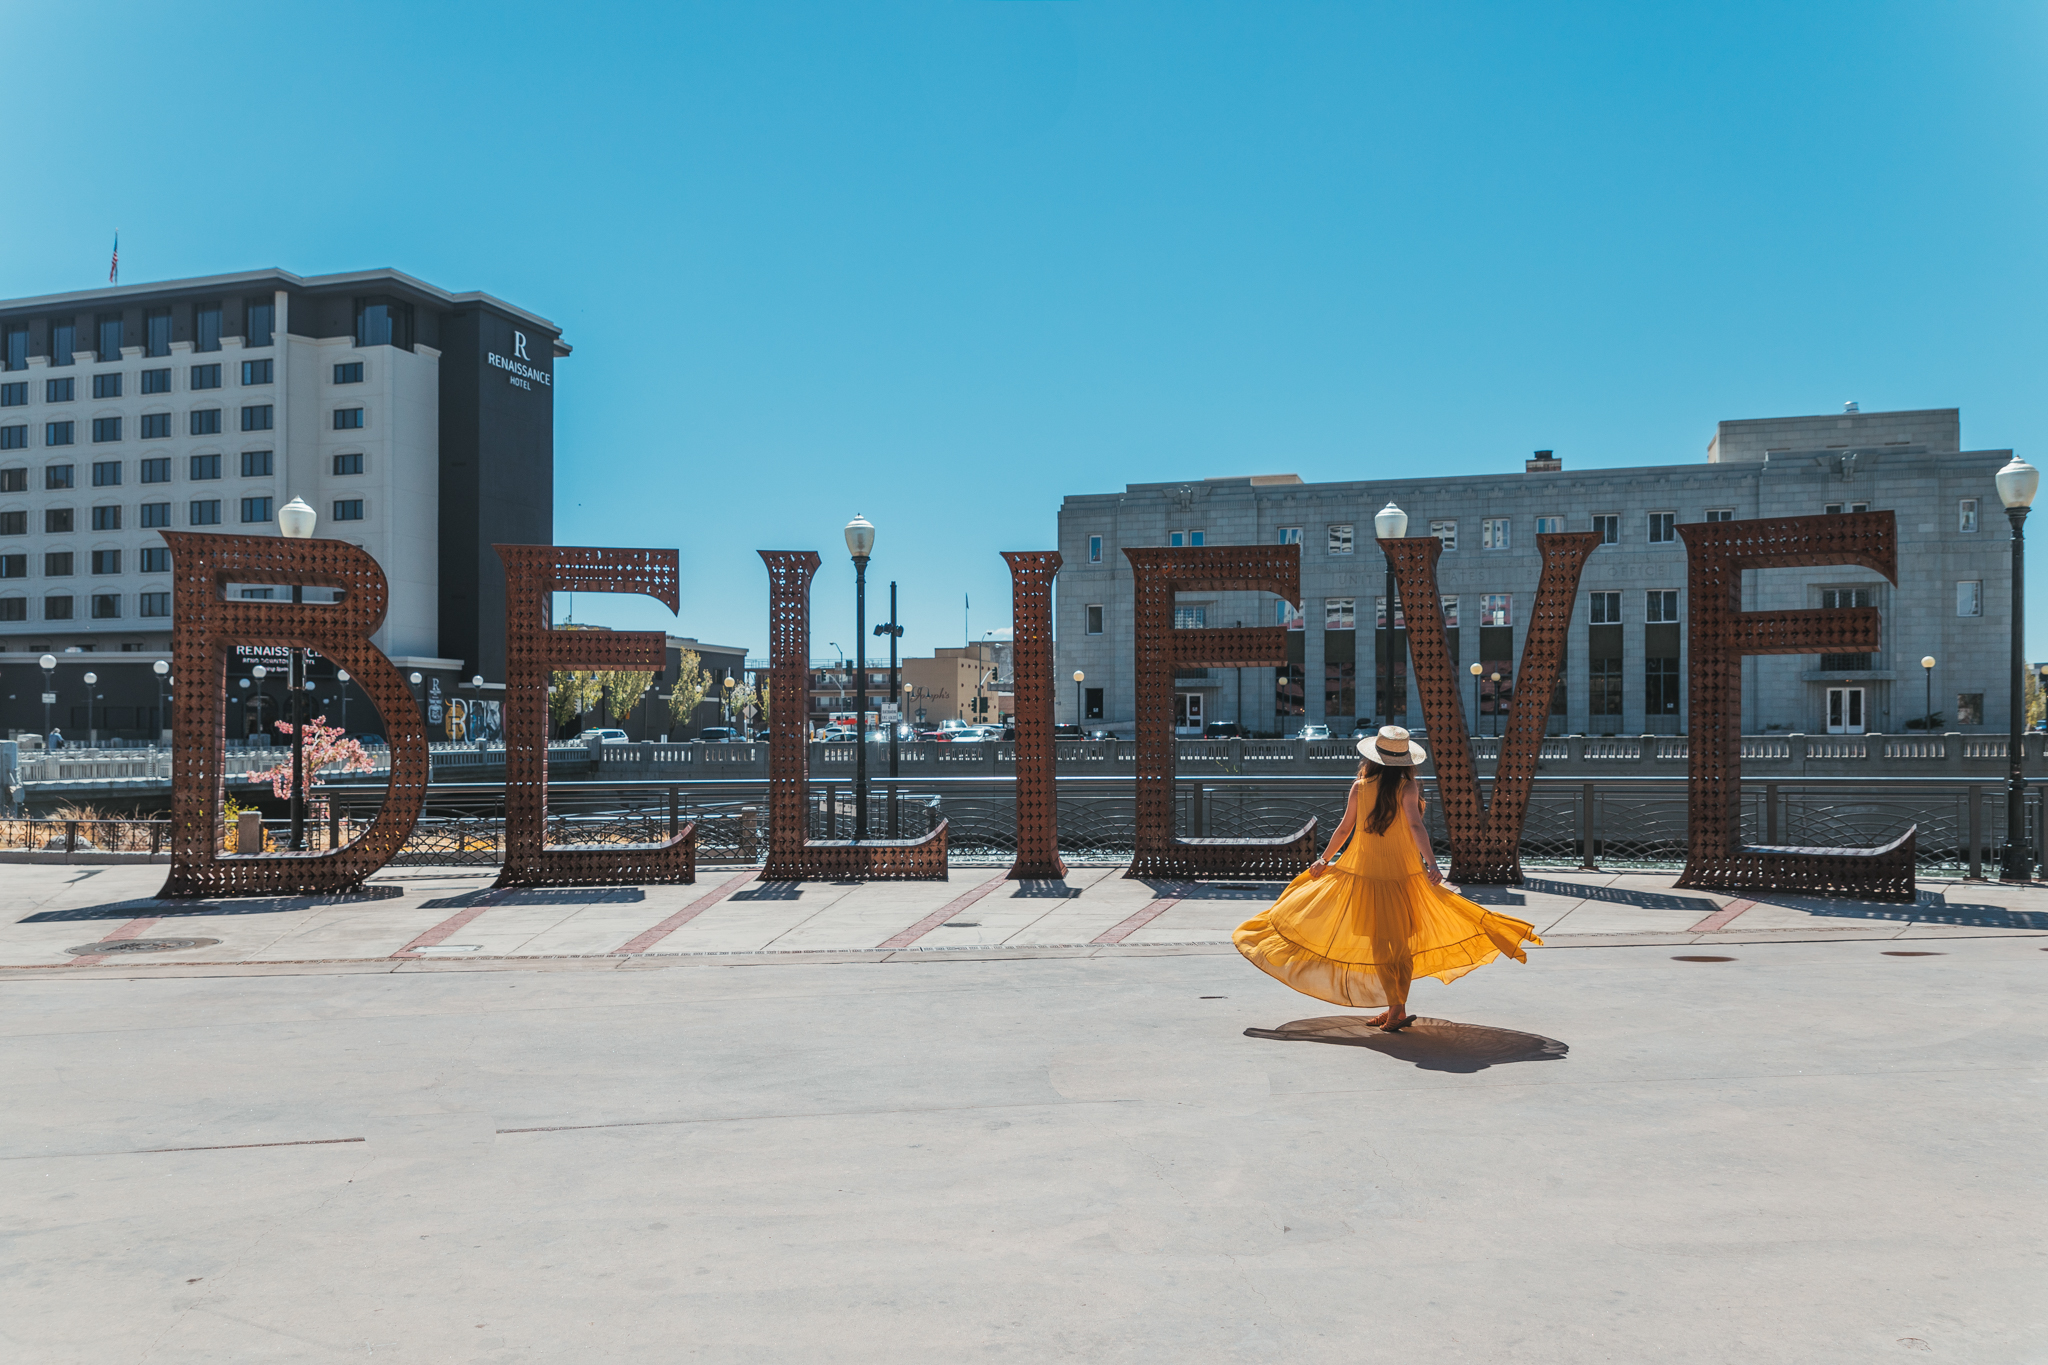 Burning Man Art in the Riverwalk District of Reno // A Quick Guide to North Lake Tahoe & Reno